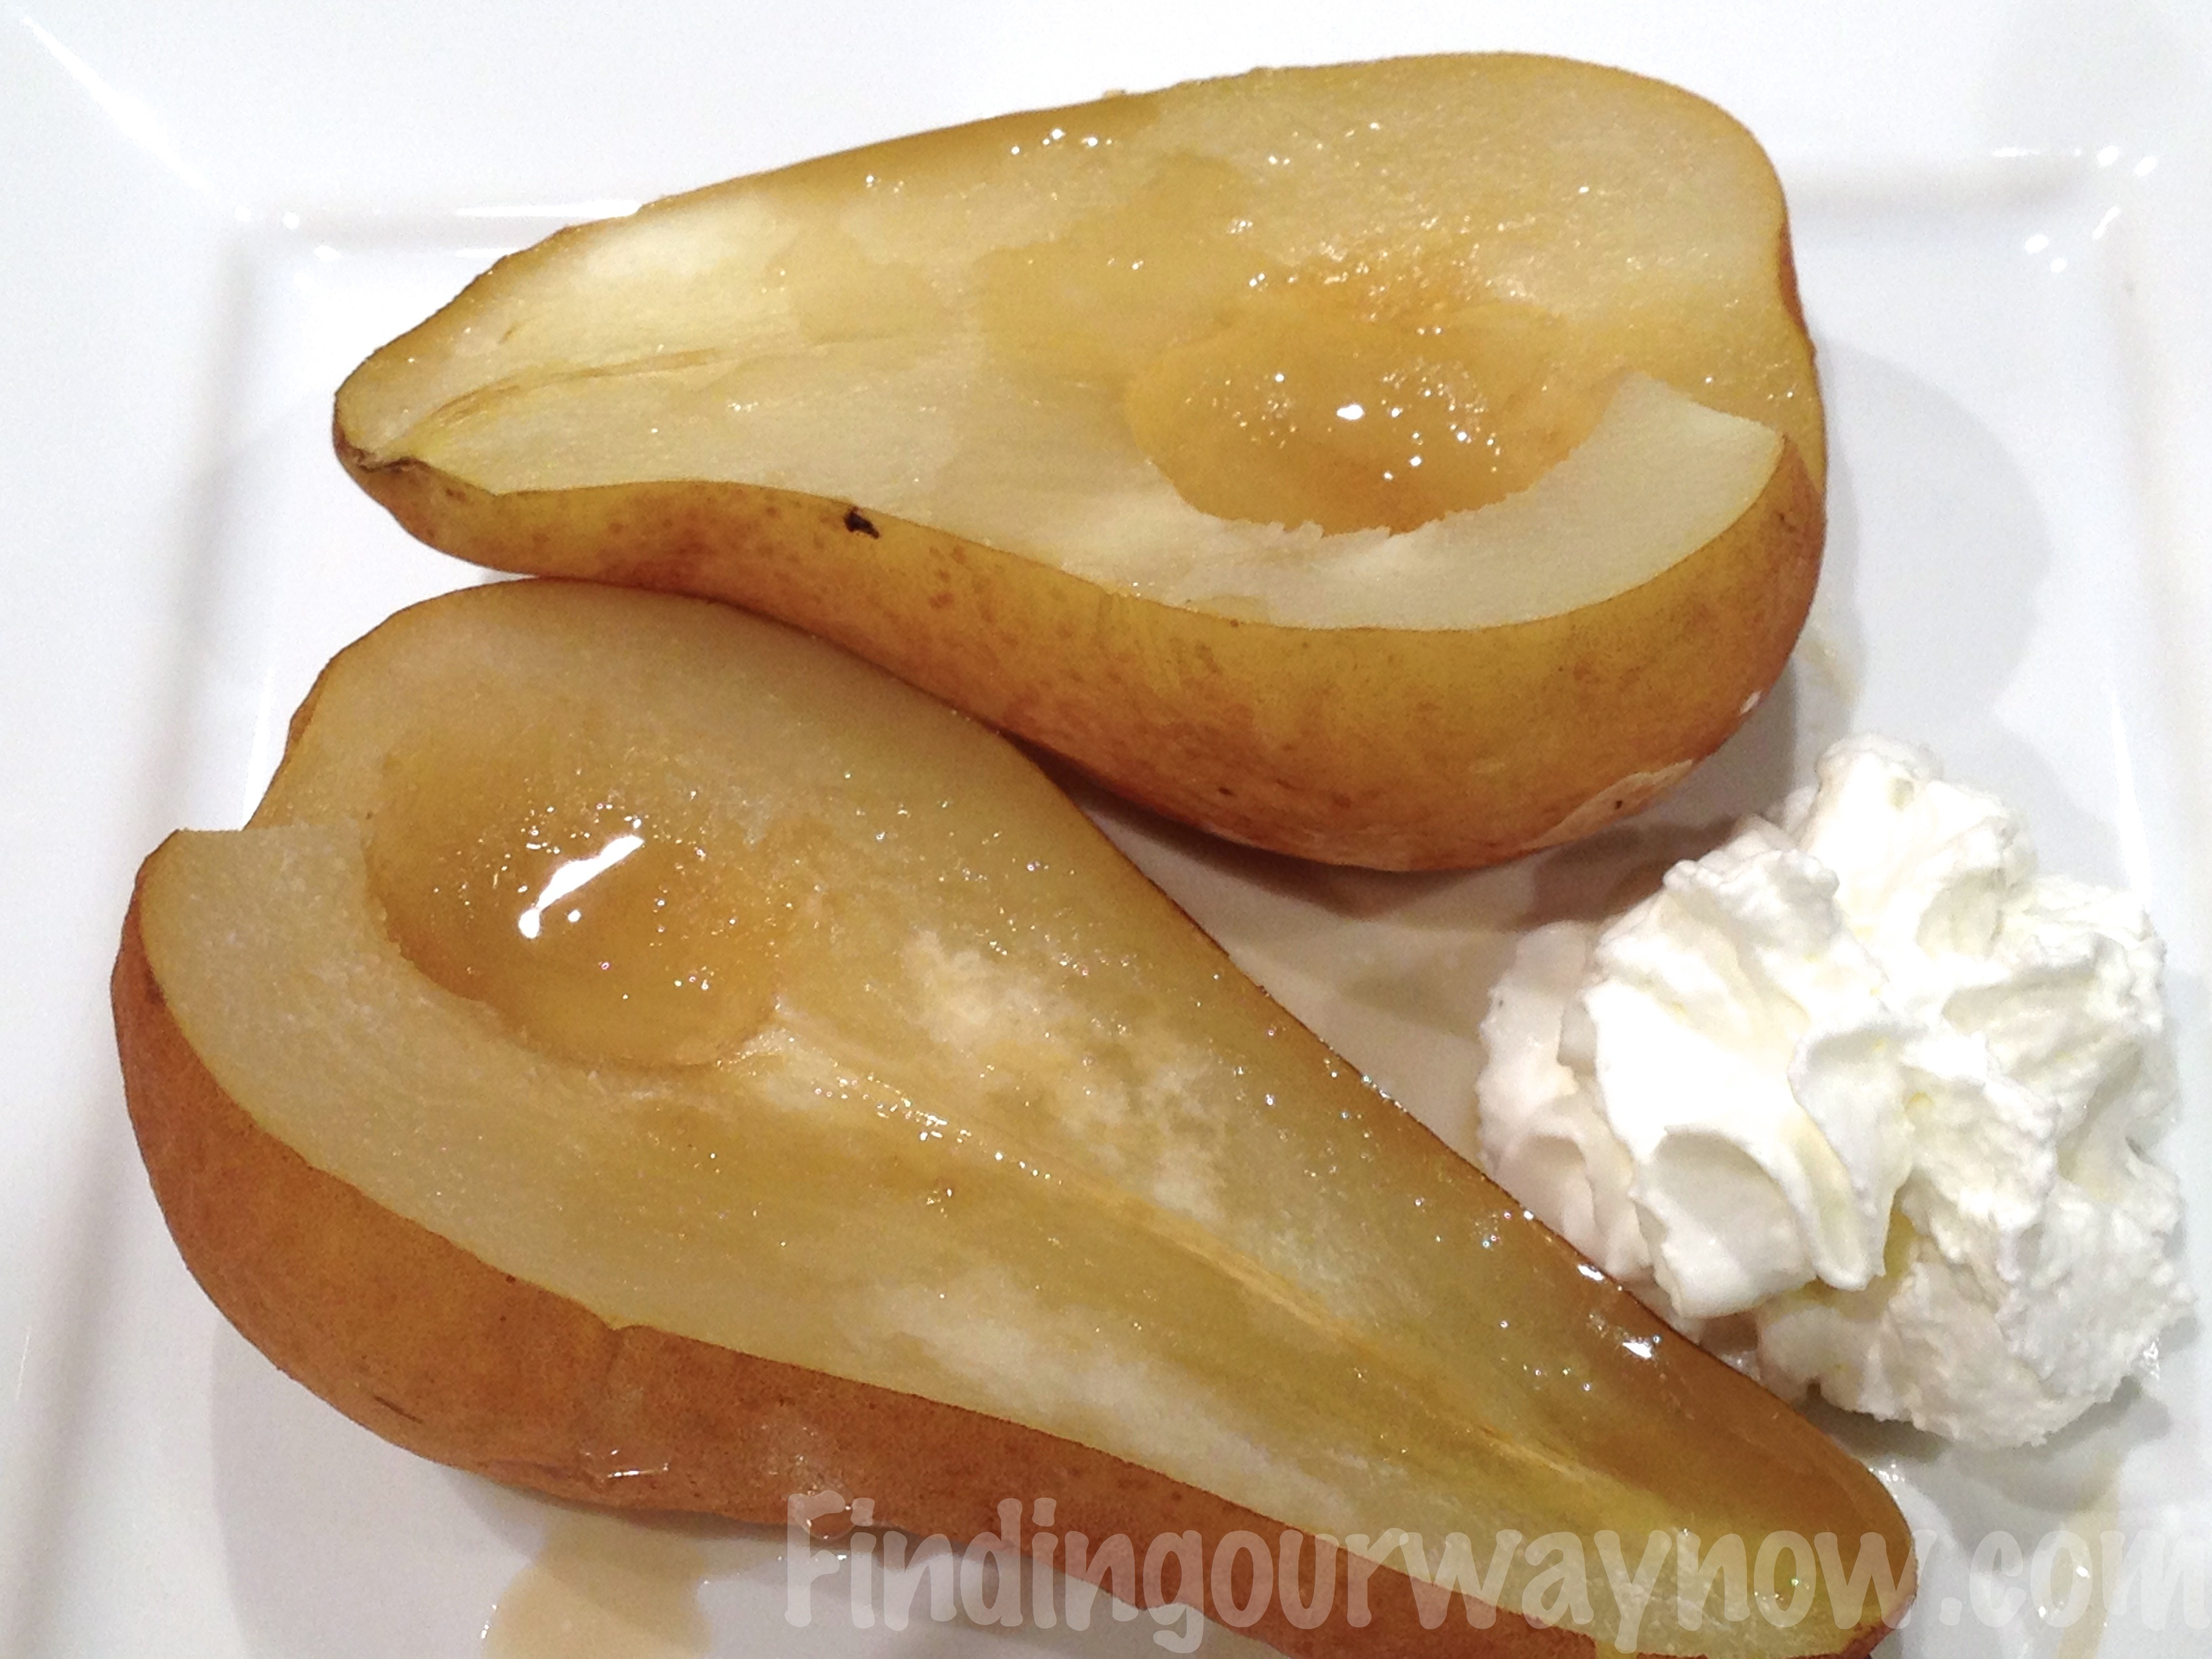 Baked Pears In The Microwave Recipe Finding Our Way Now